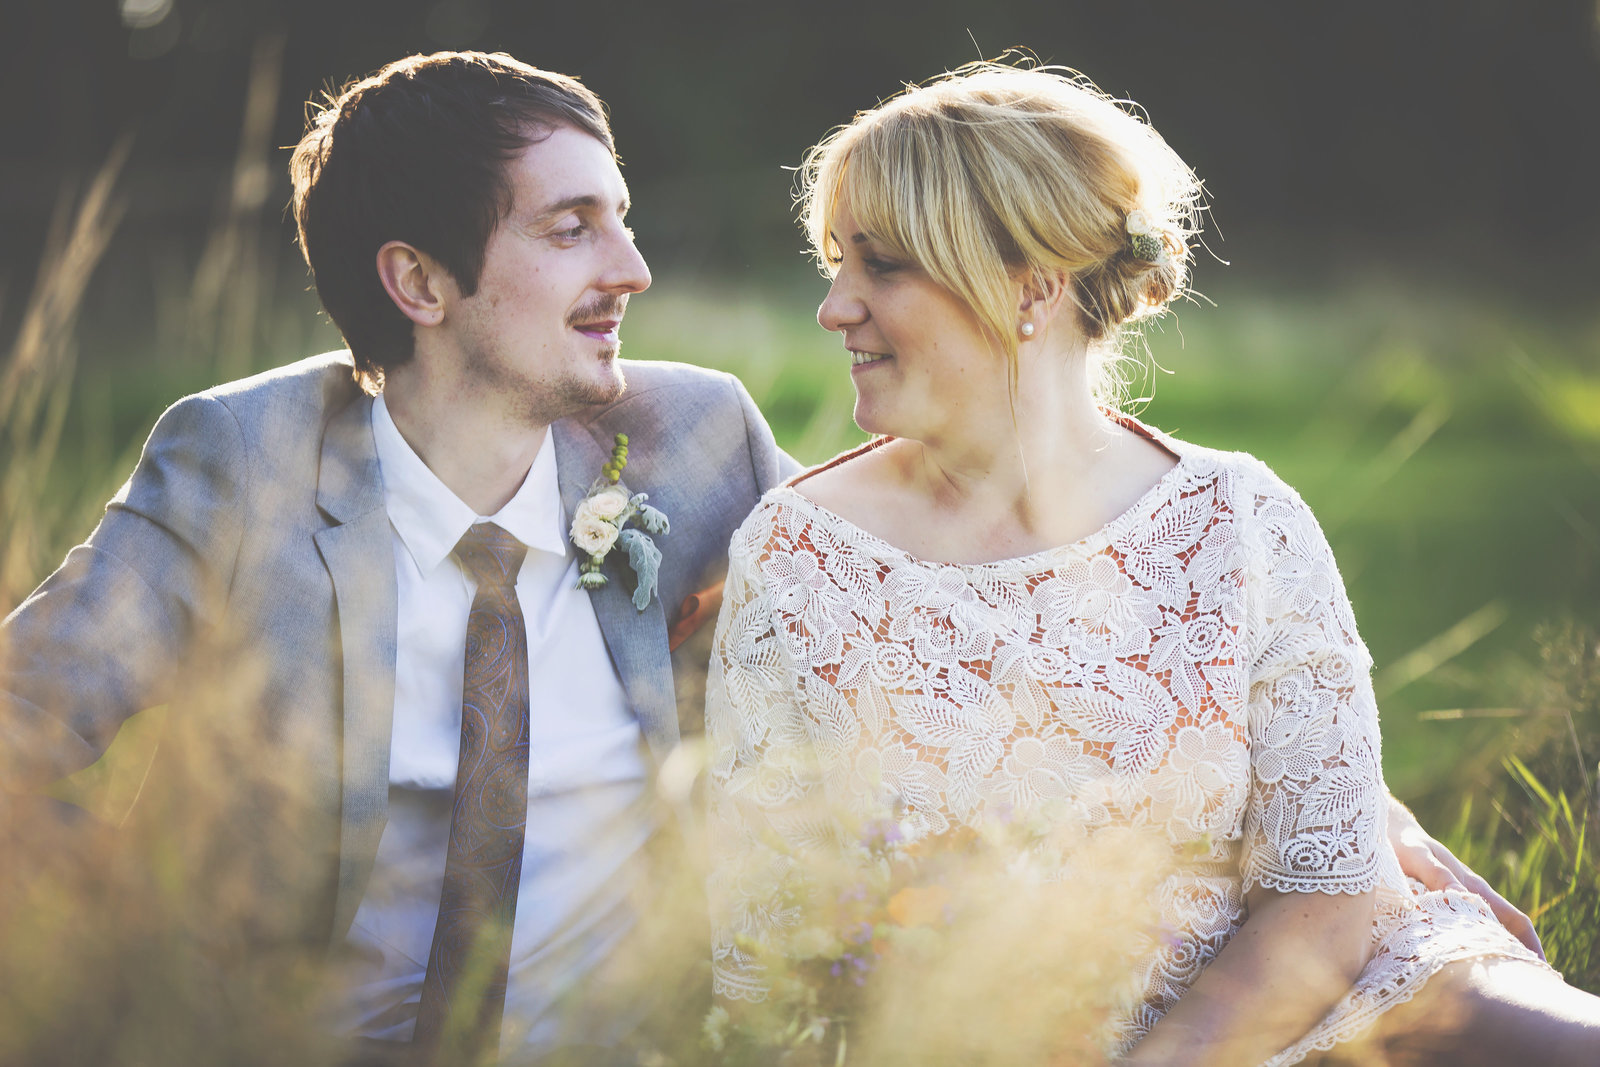 Wedding at a campsite in Norfolk. Bride and groom sitting in the grass looking at each other